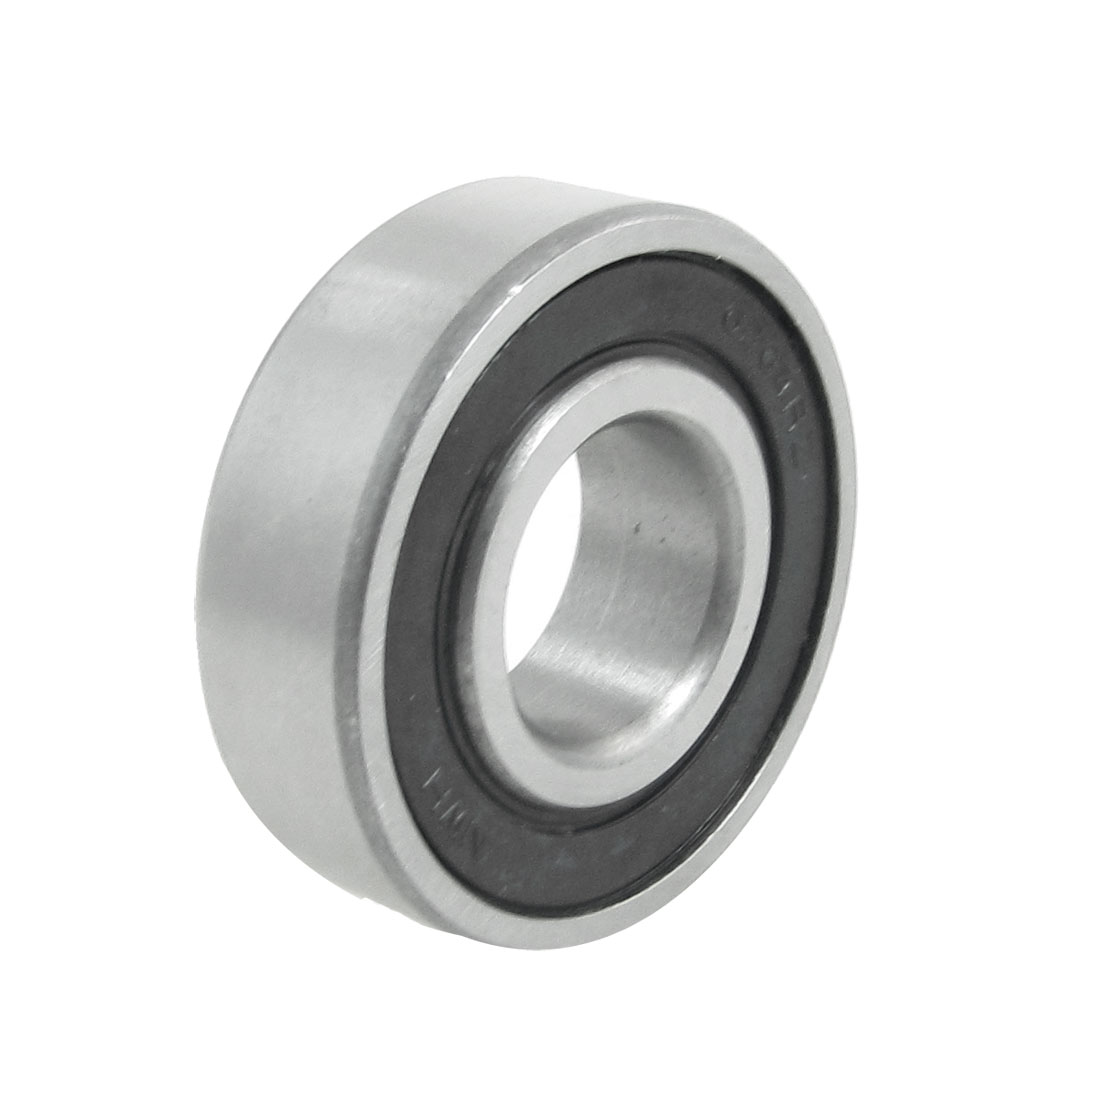 6204RS 20mm x 47mm x 14mm Rubber Shielded Deep Groove Ball Bearing